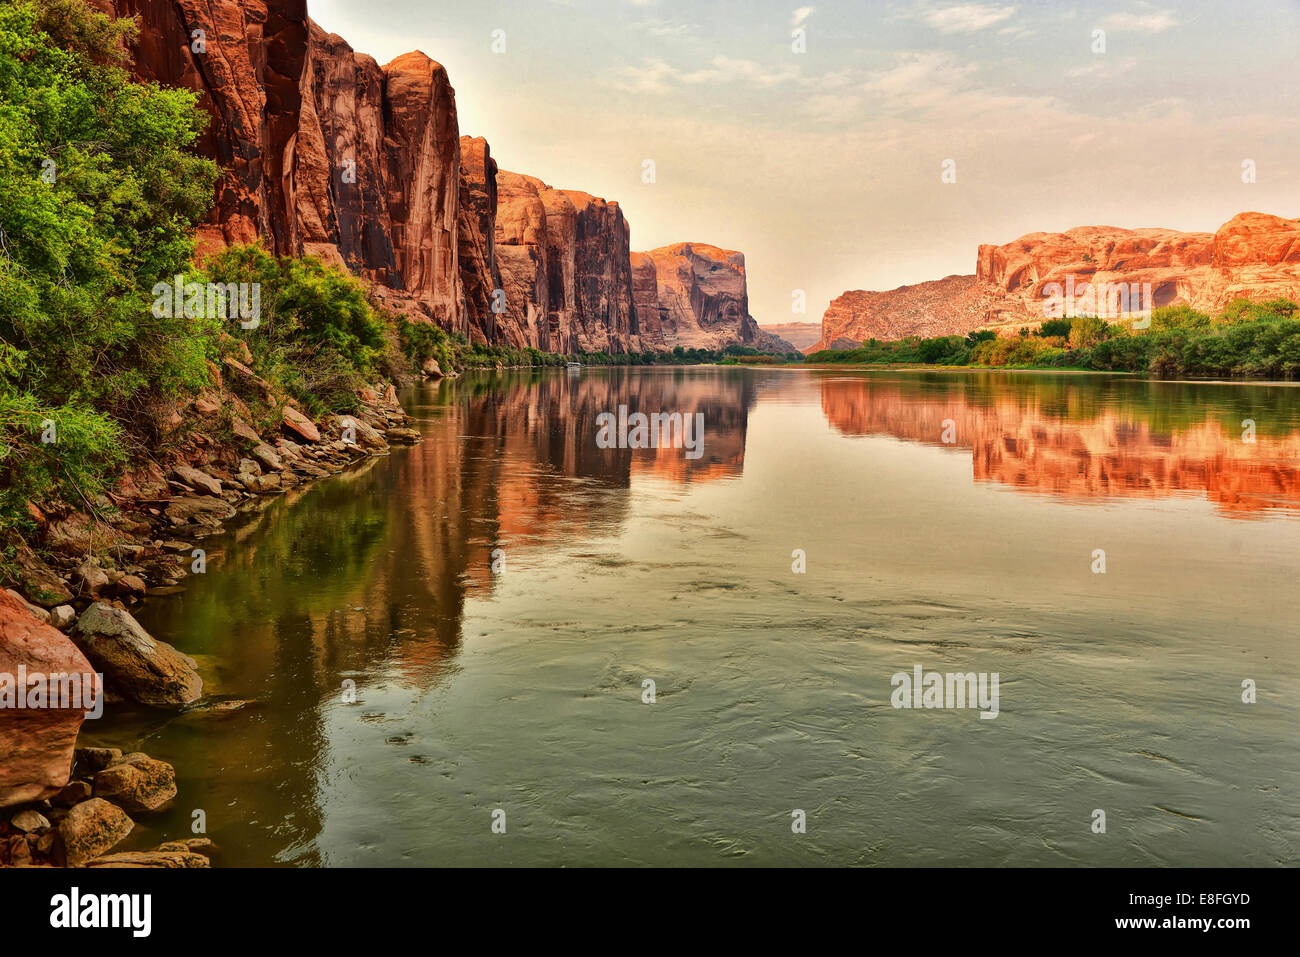 USA, Utah, Red rock reflecting along Colorado River near Moab - Stock Image